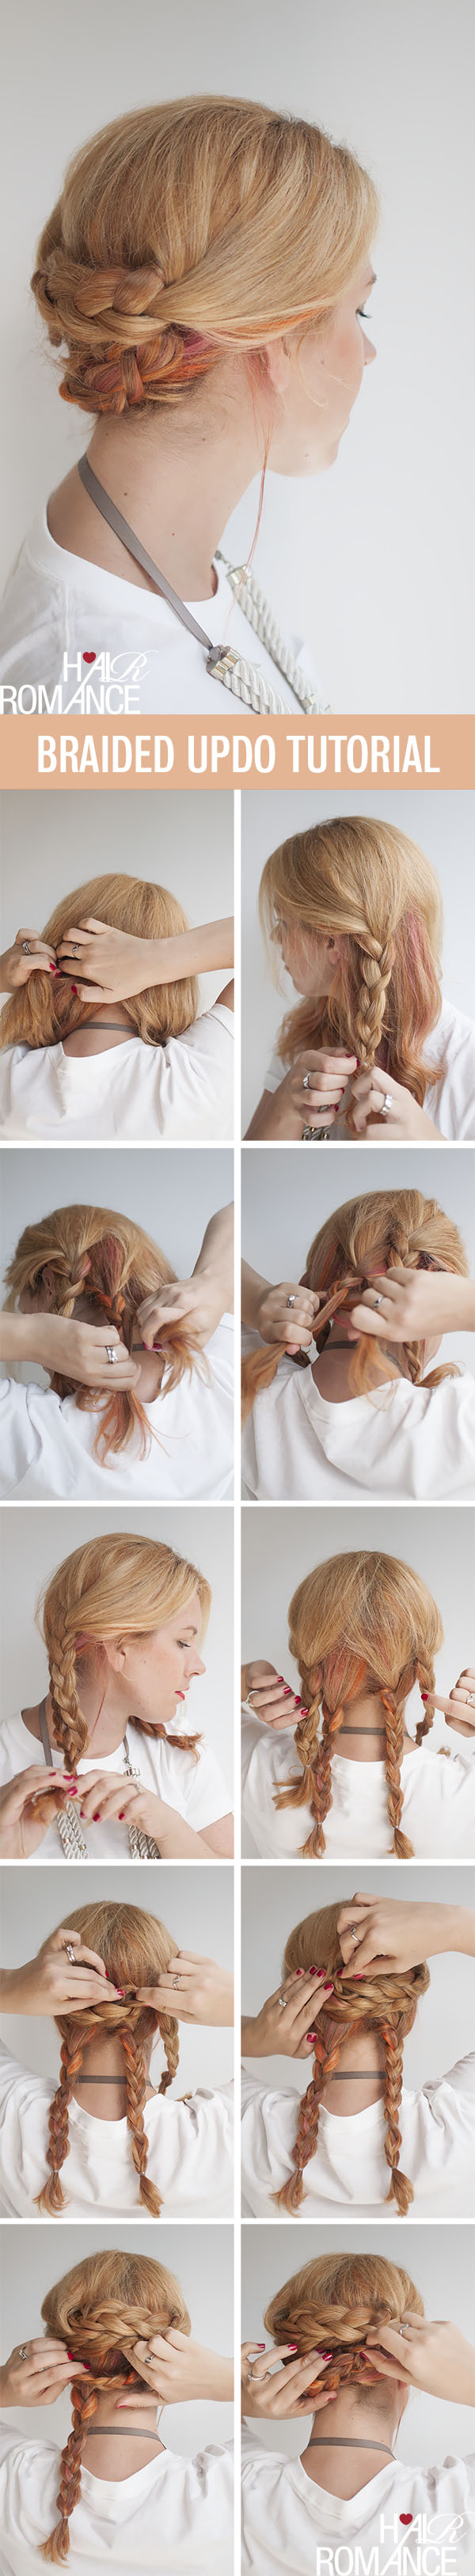 Braid Hair Tutorial: Simple Easy Braided Updo Hair